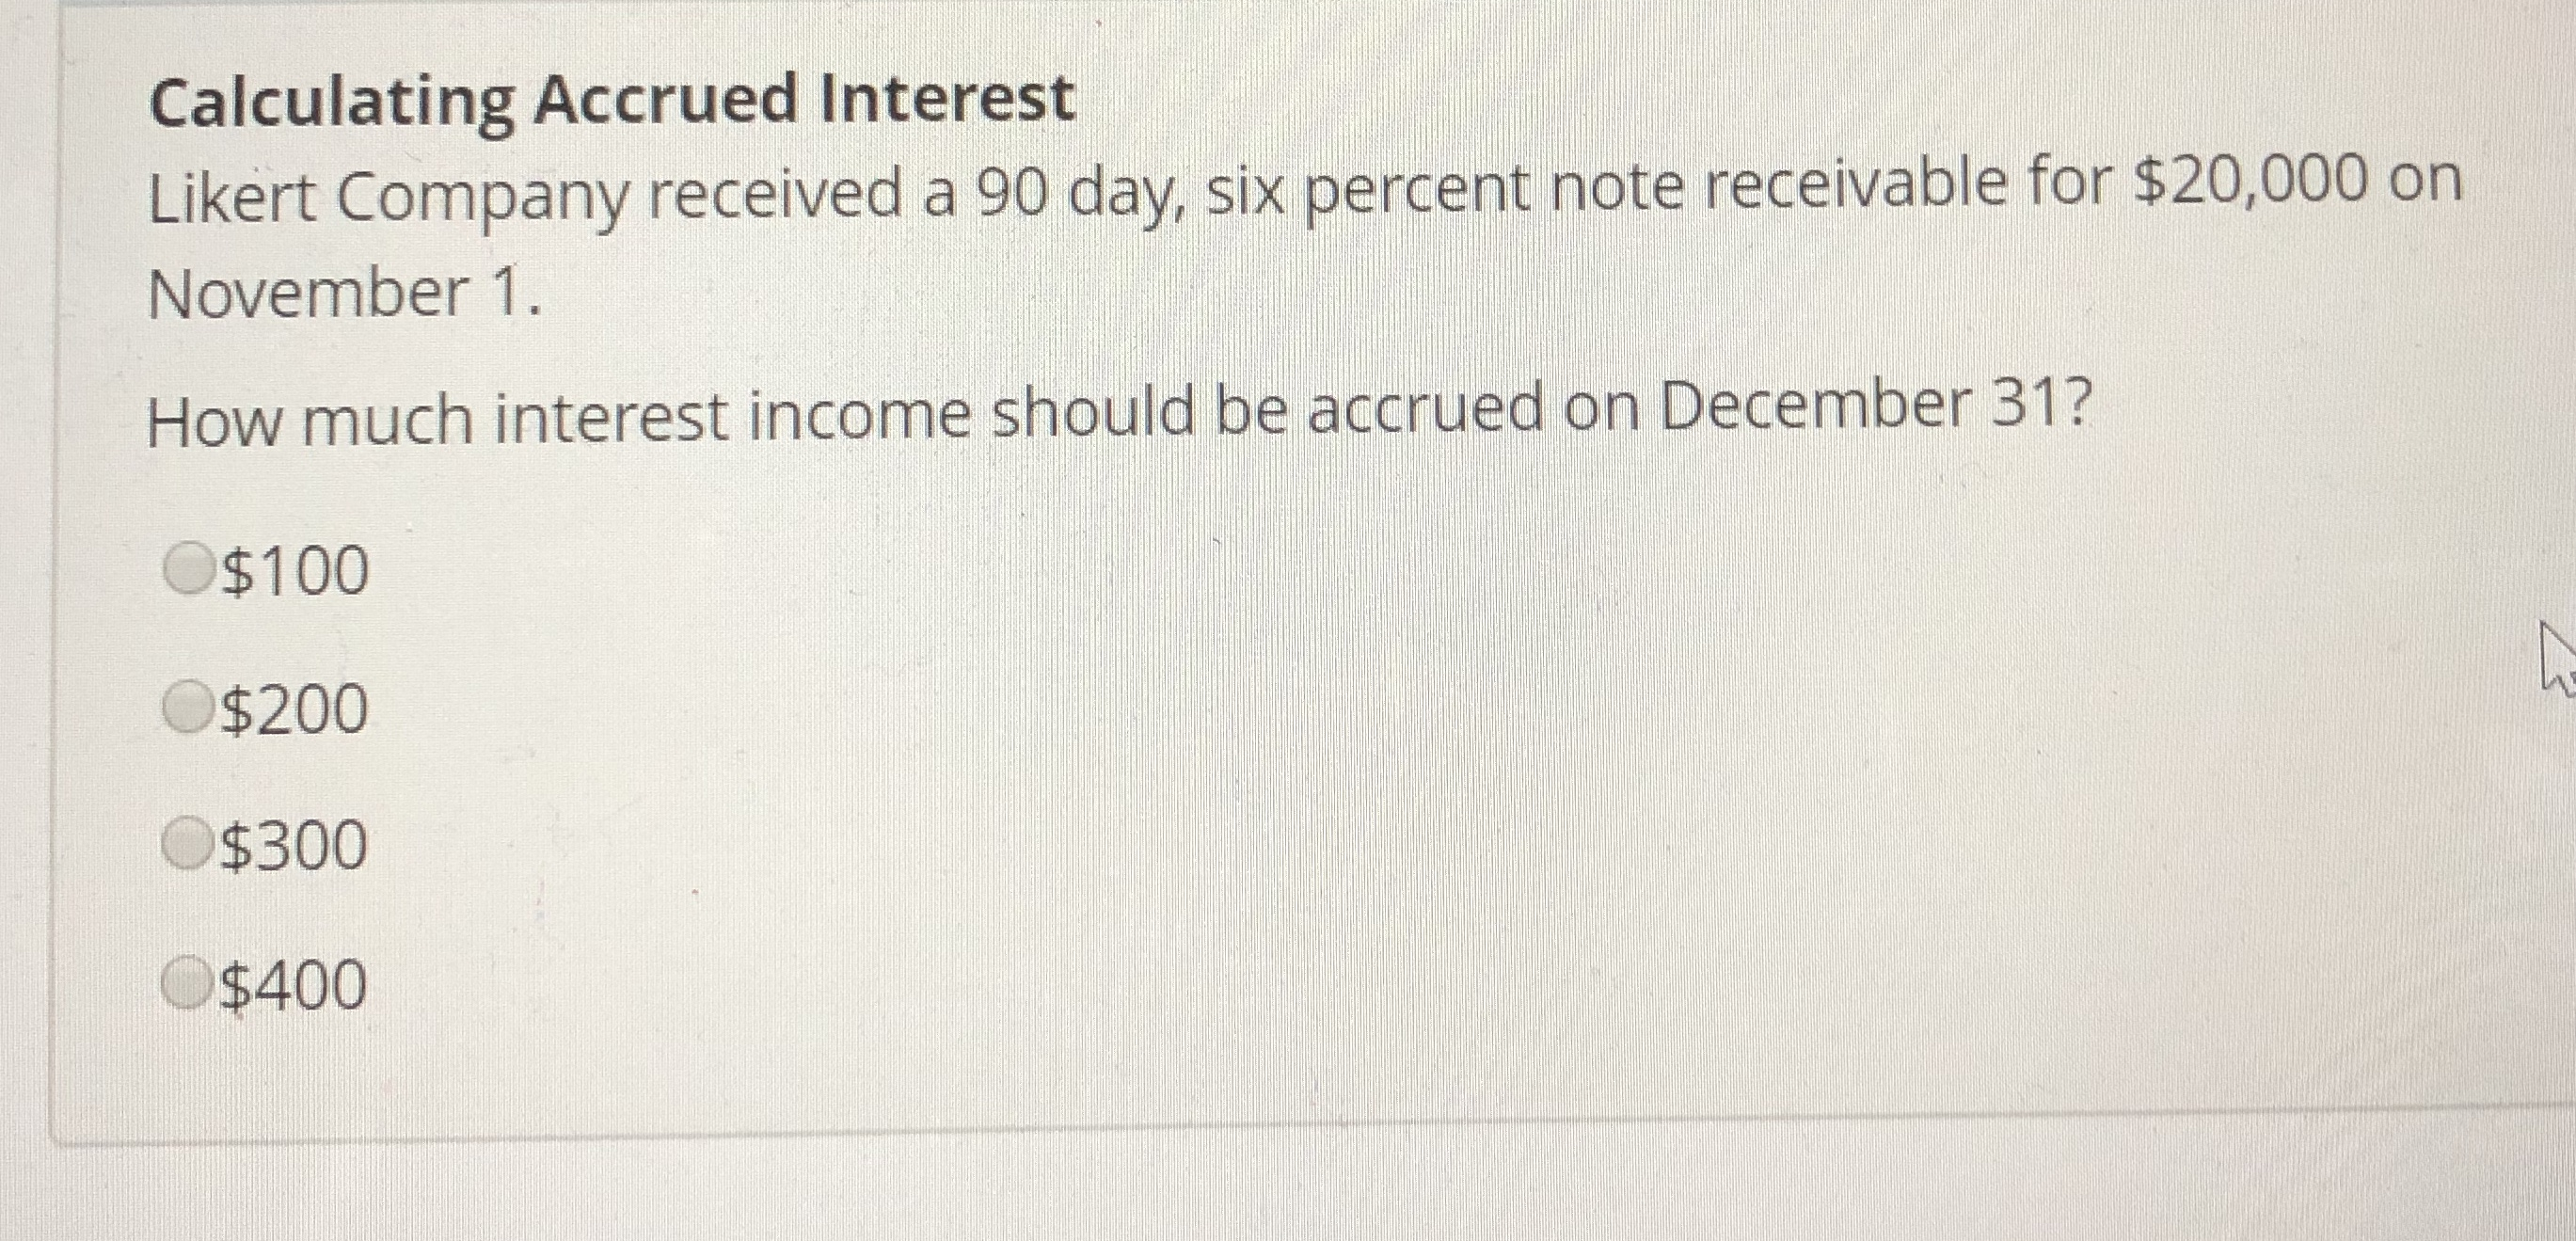 Calculating Accrued Interest Likert Company received a 90 day, six percent note receivable for $20,000 orn November 1. How much interest income should be accrued on December 31? $100 $200 $300 $400